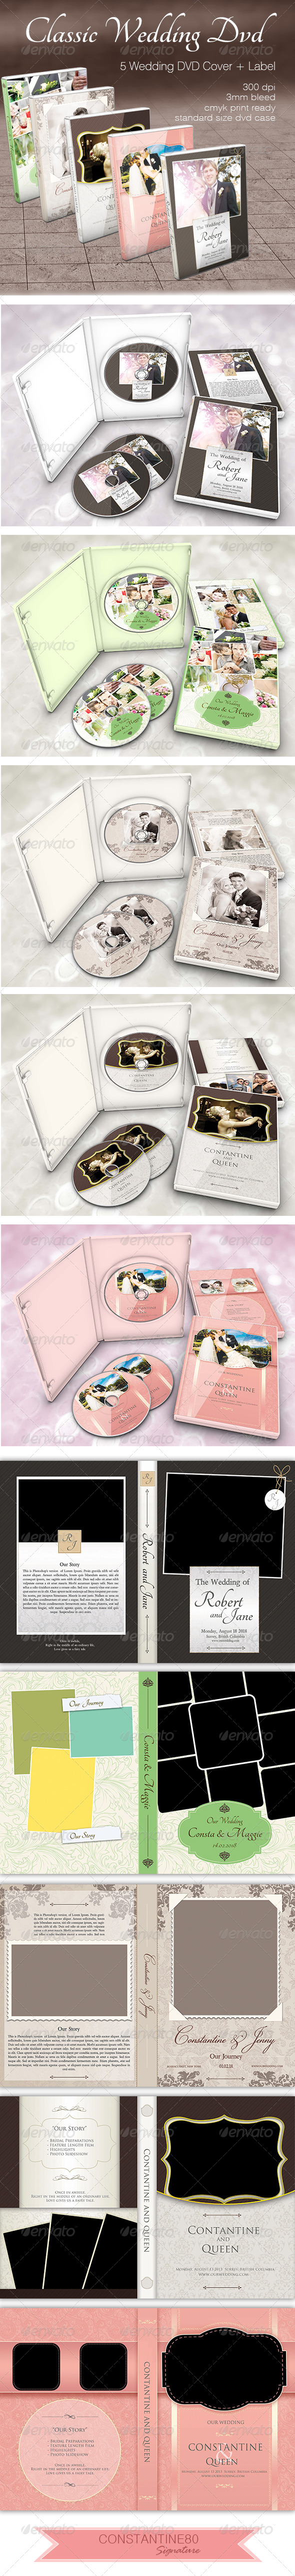 GraphicRiver Classic Wedding Dvd 5113359